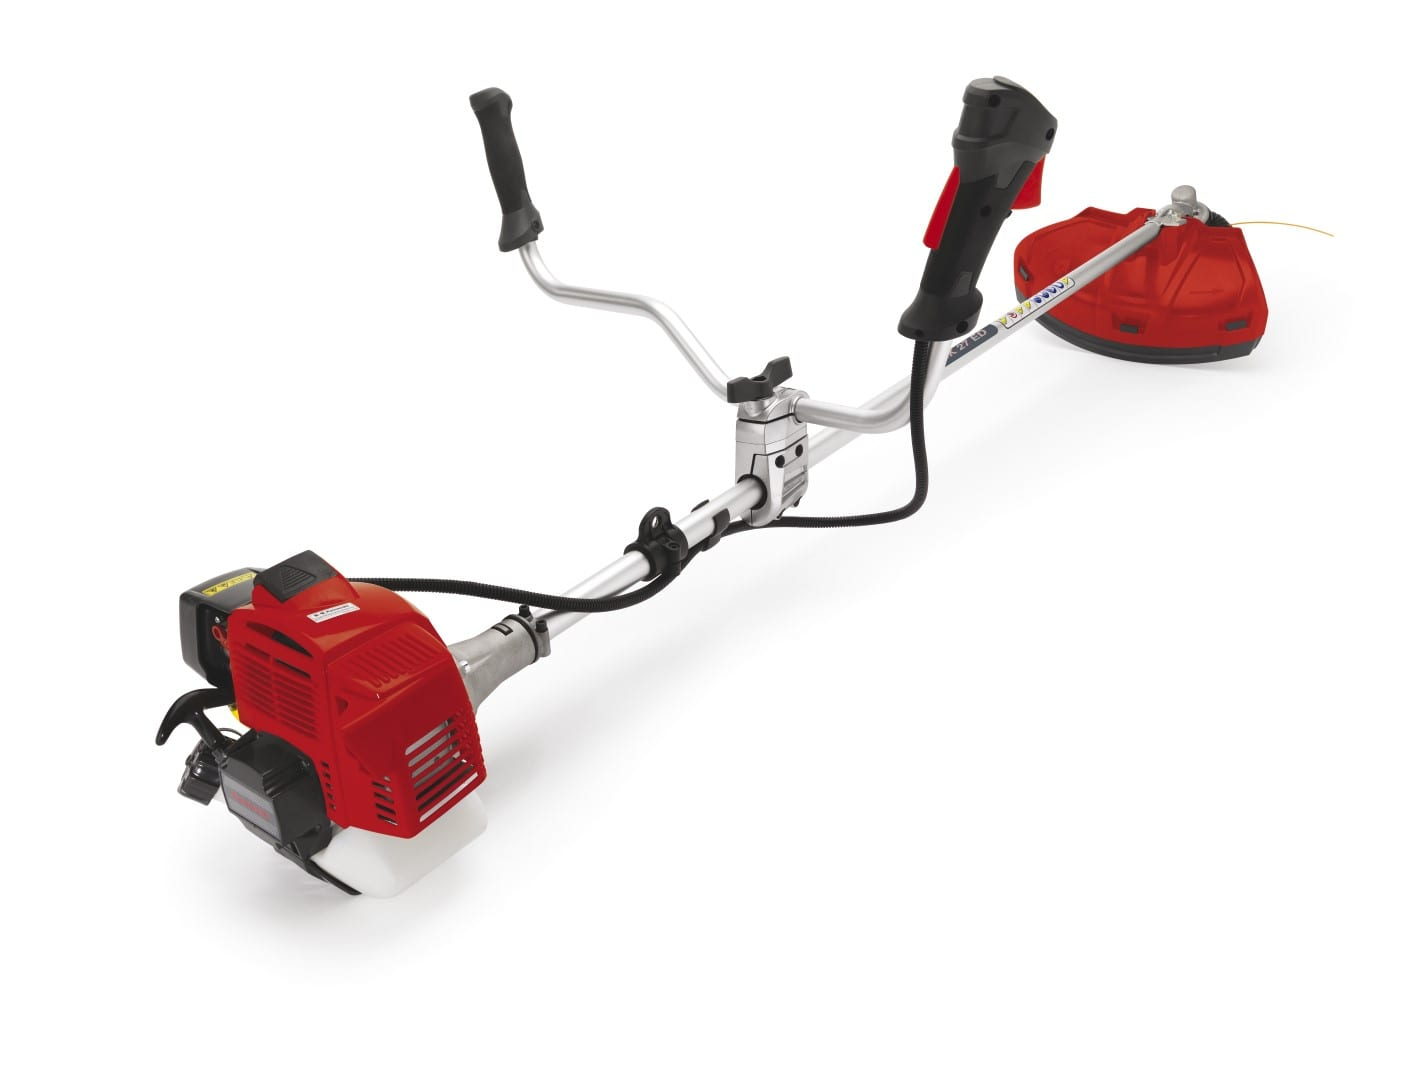 Mountfield BK27ED Trimmer / Brushcutter